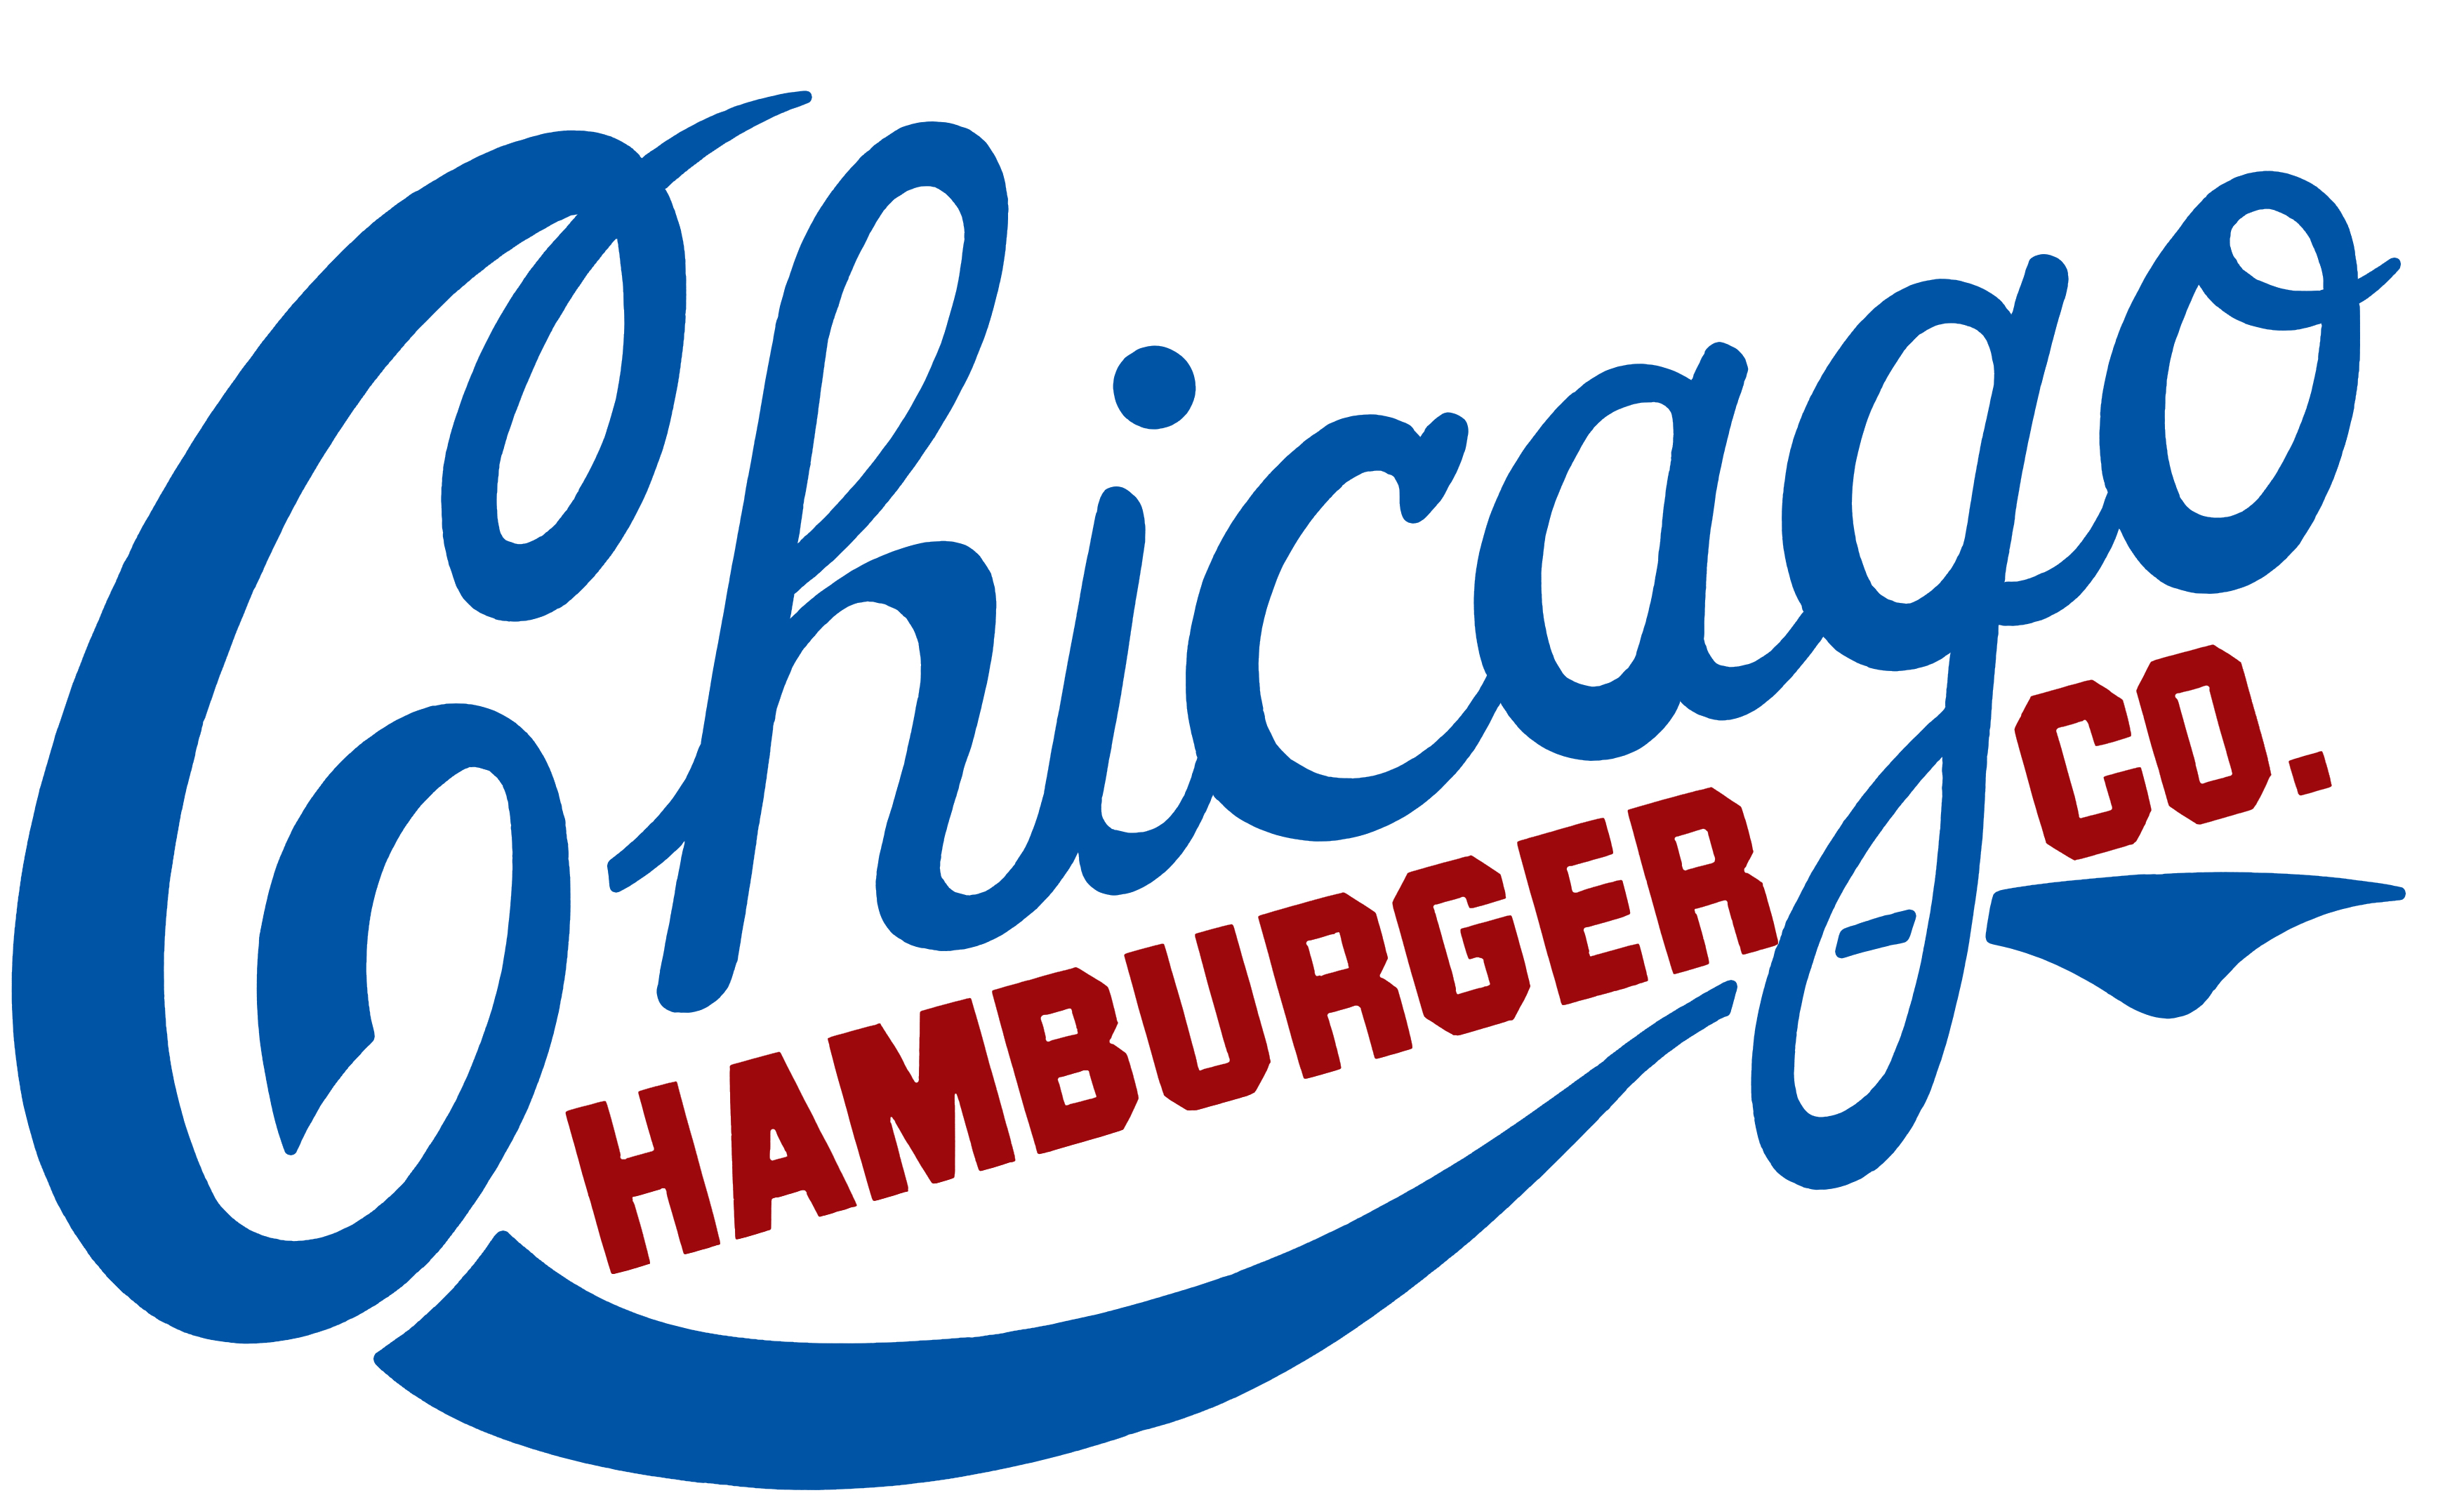 Chicago Hamburger Co.